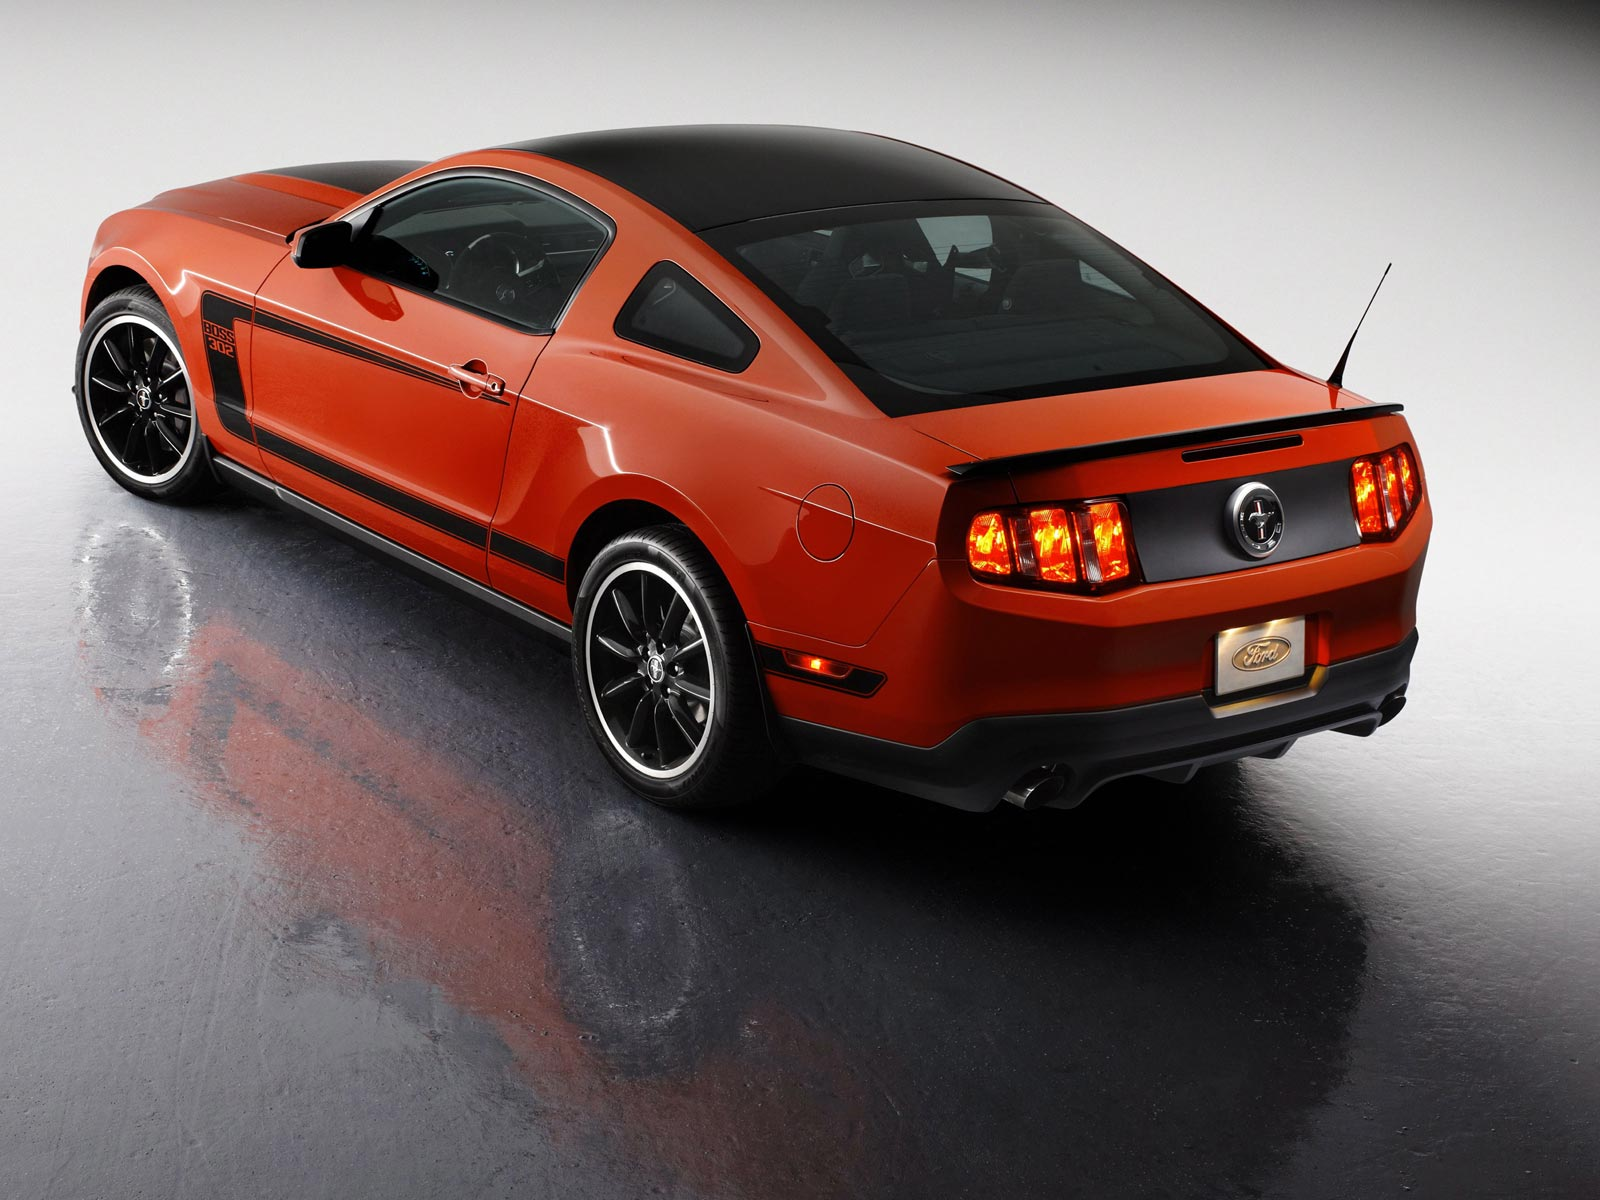 ford mustang 2013 shelby gt500 super snake 850 ps autos post. Black Bedroom Furniture Sets. Home Design Ideas